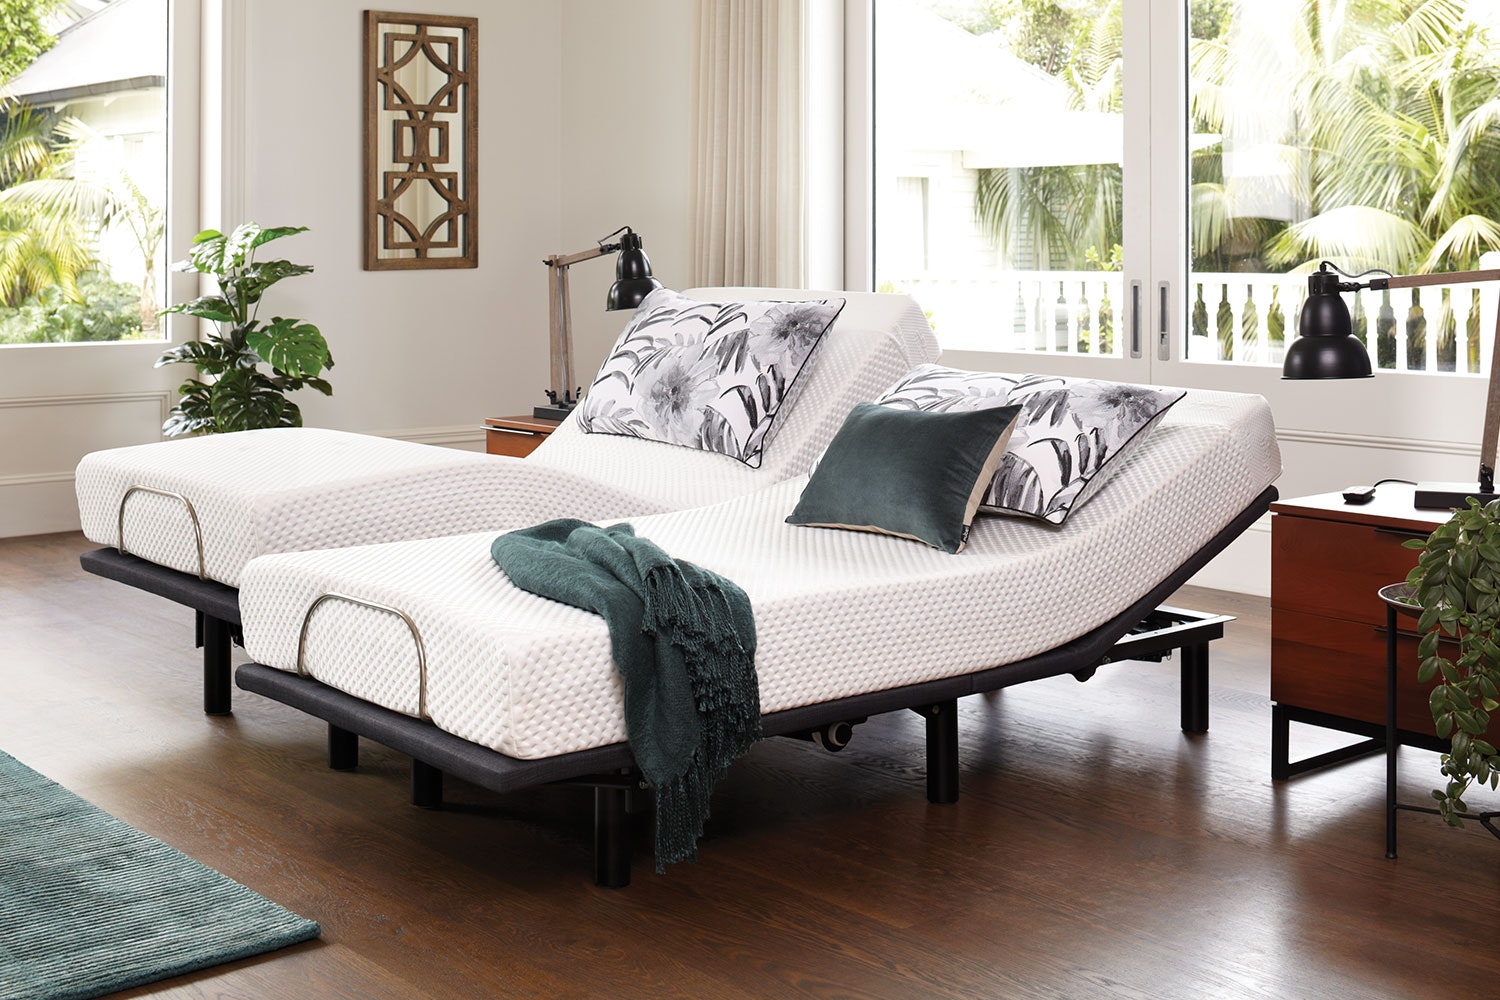 19cm Split Californian King Mattress with Essential Adjustable Base by Tempur